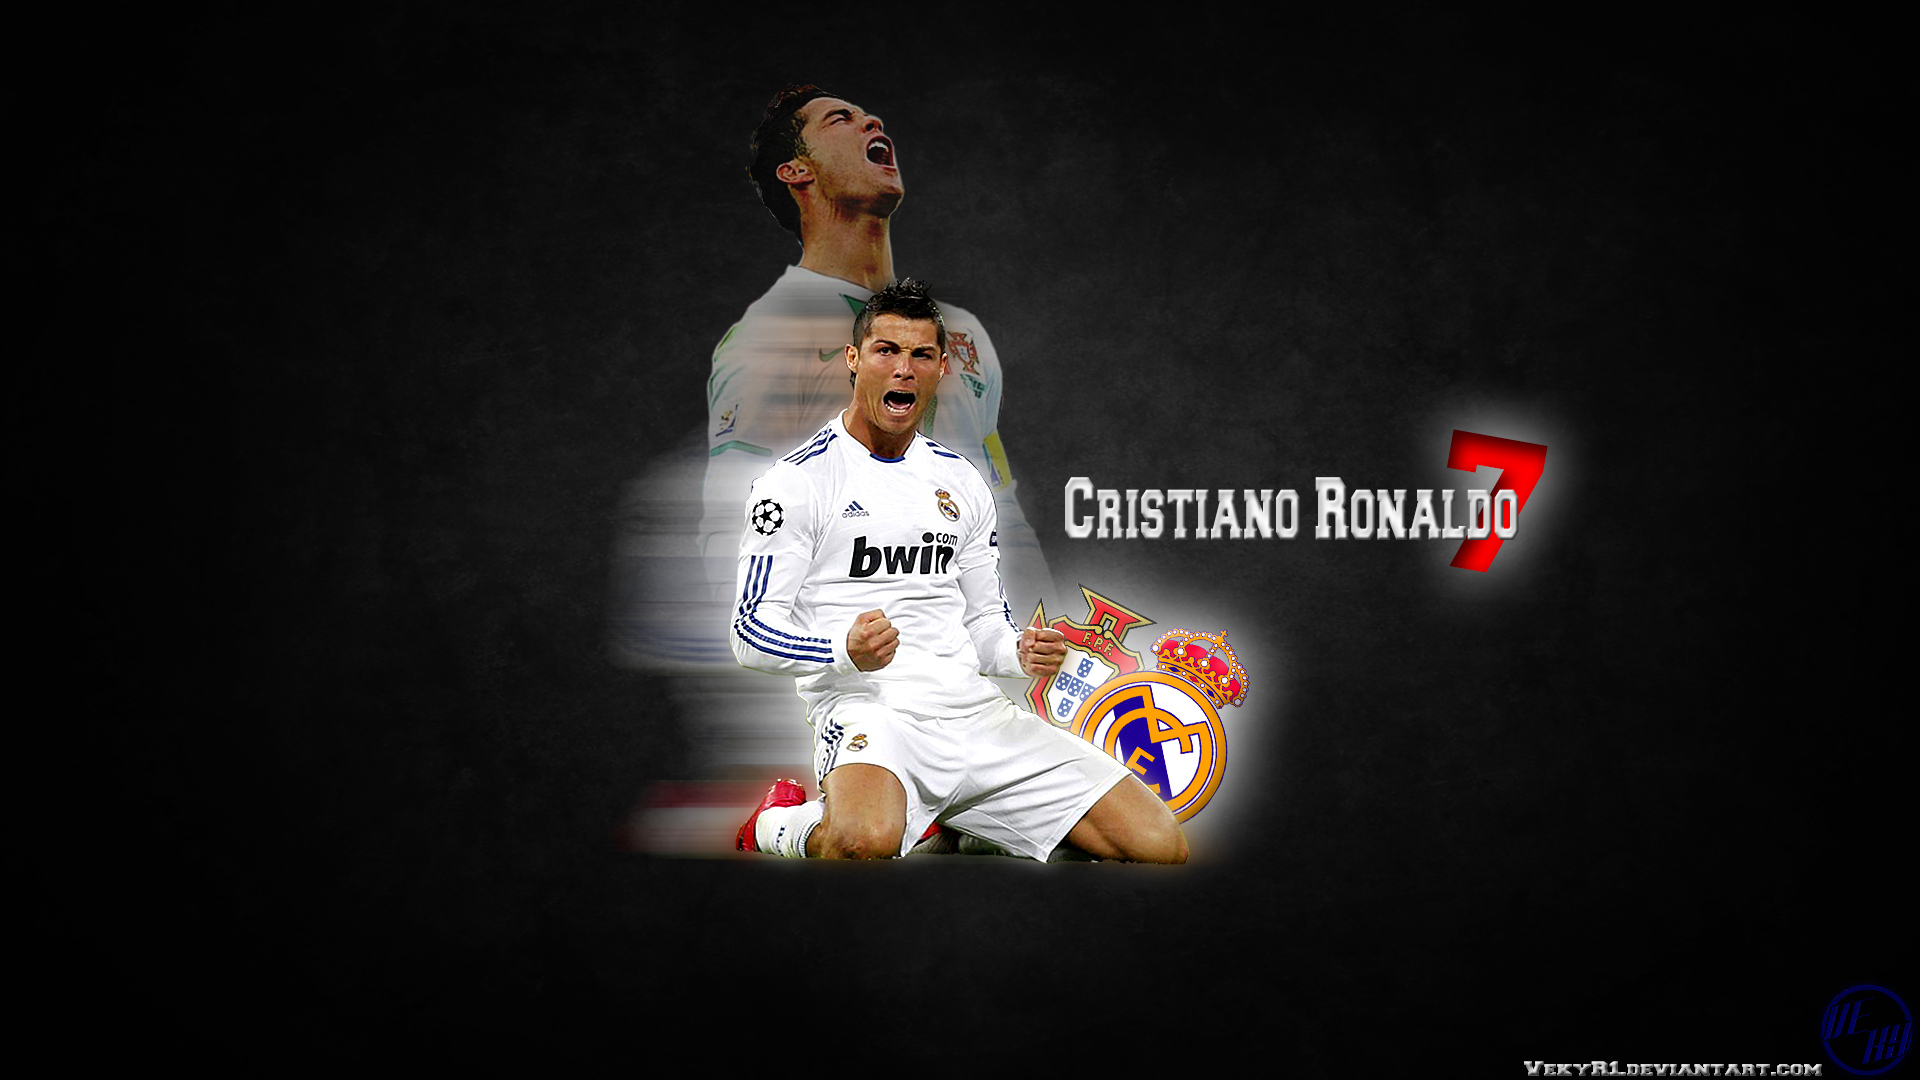 Cristiano Ronaldo Background Hd